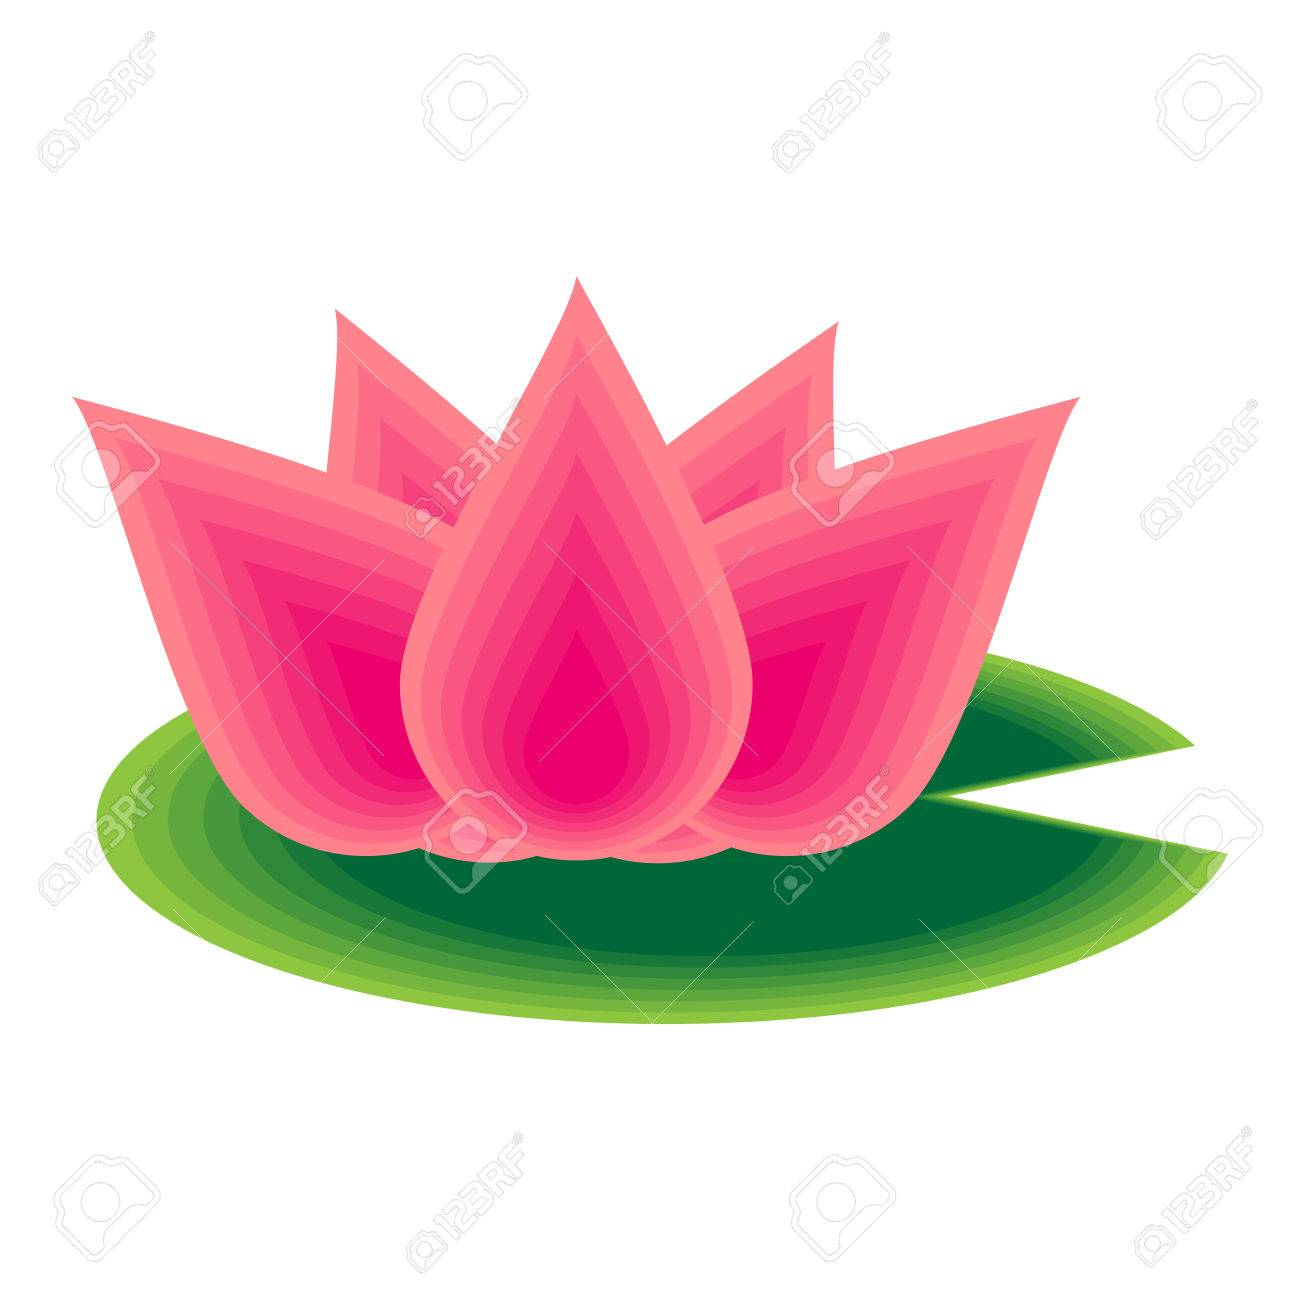 Vector Illustration Of Lotus Flower Royalty Free Cliparts Vectors